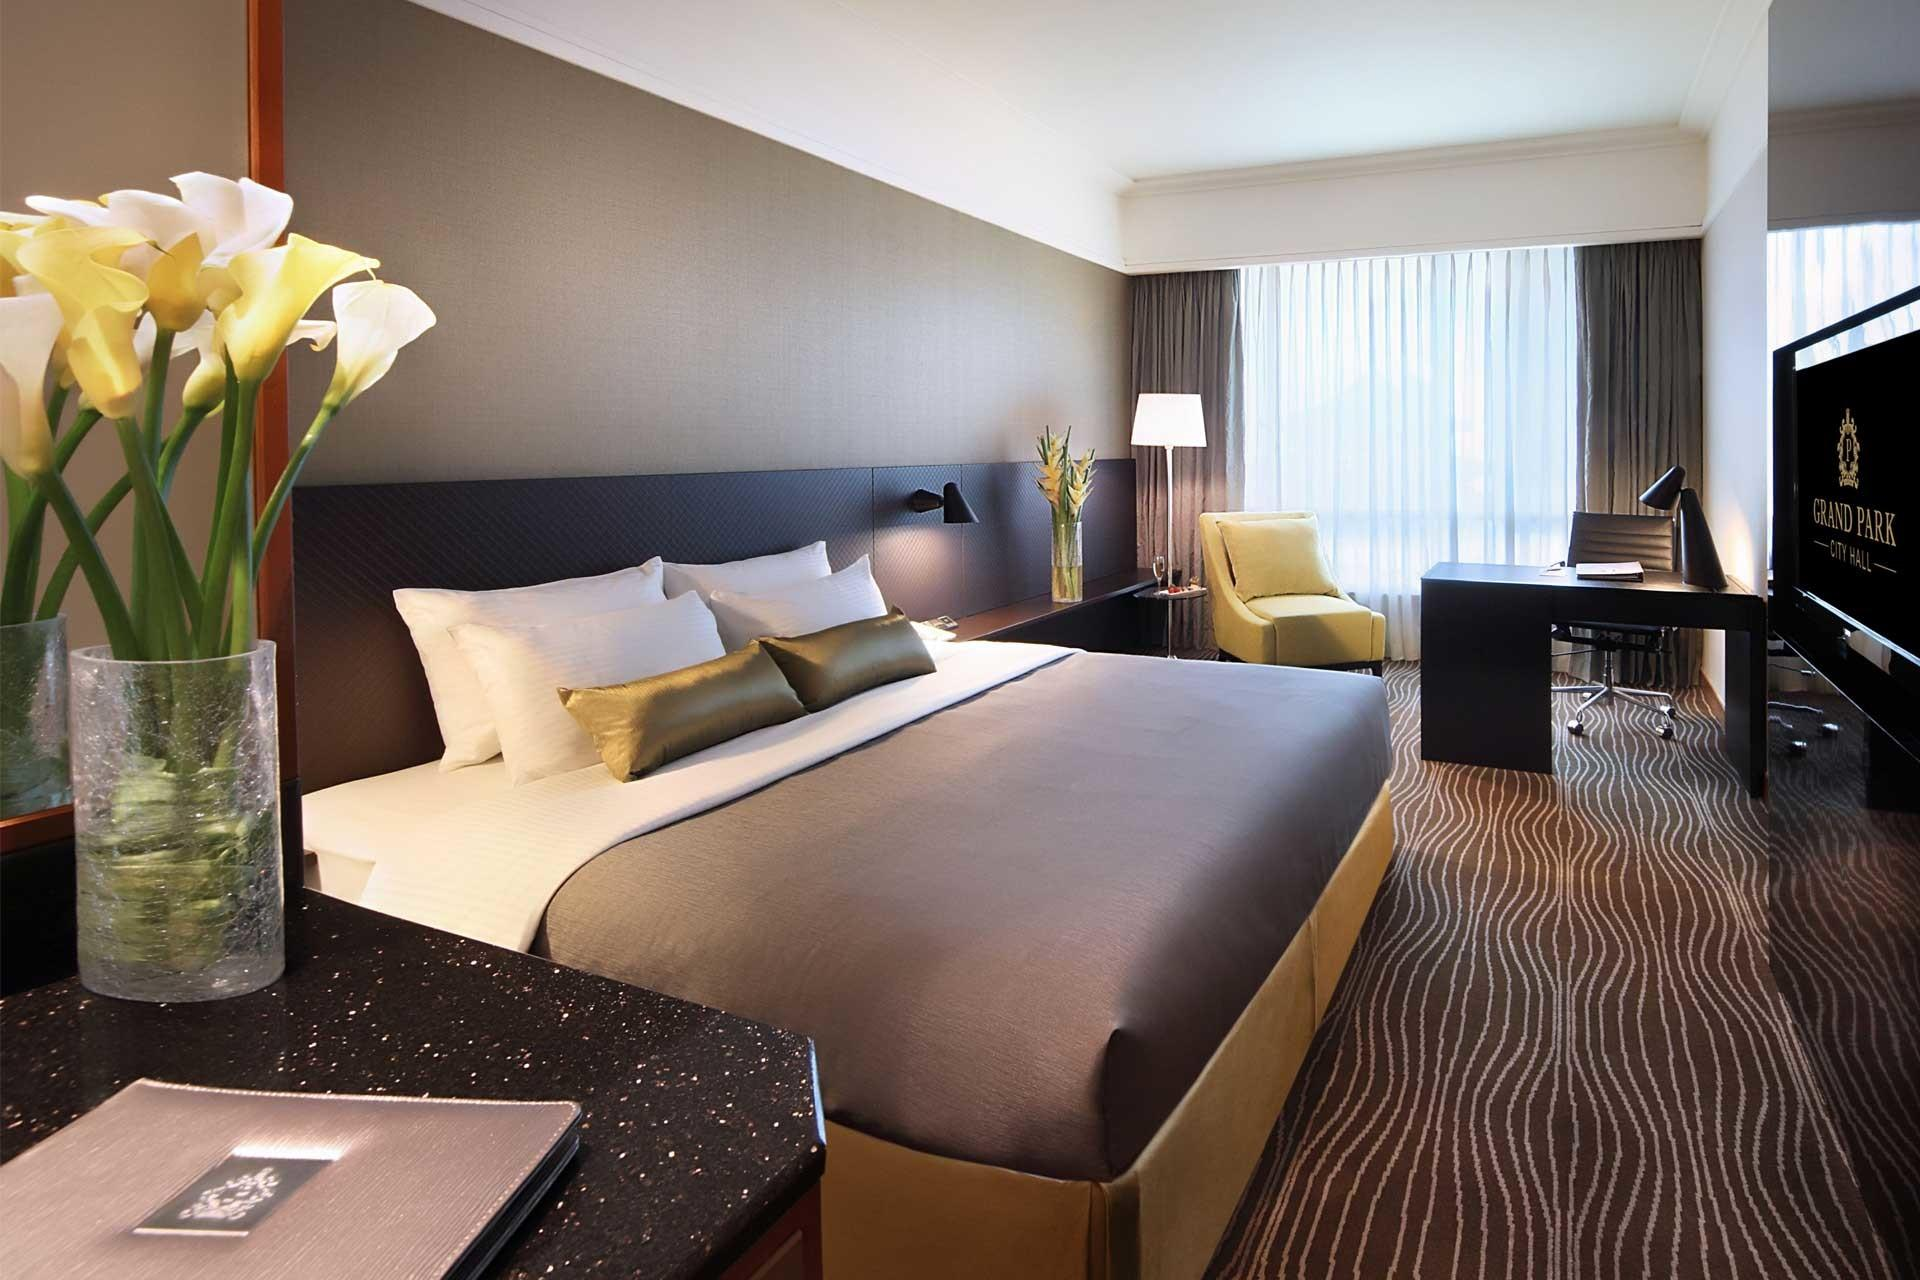 Room City Hotel Rooms Designs Colors Modern